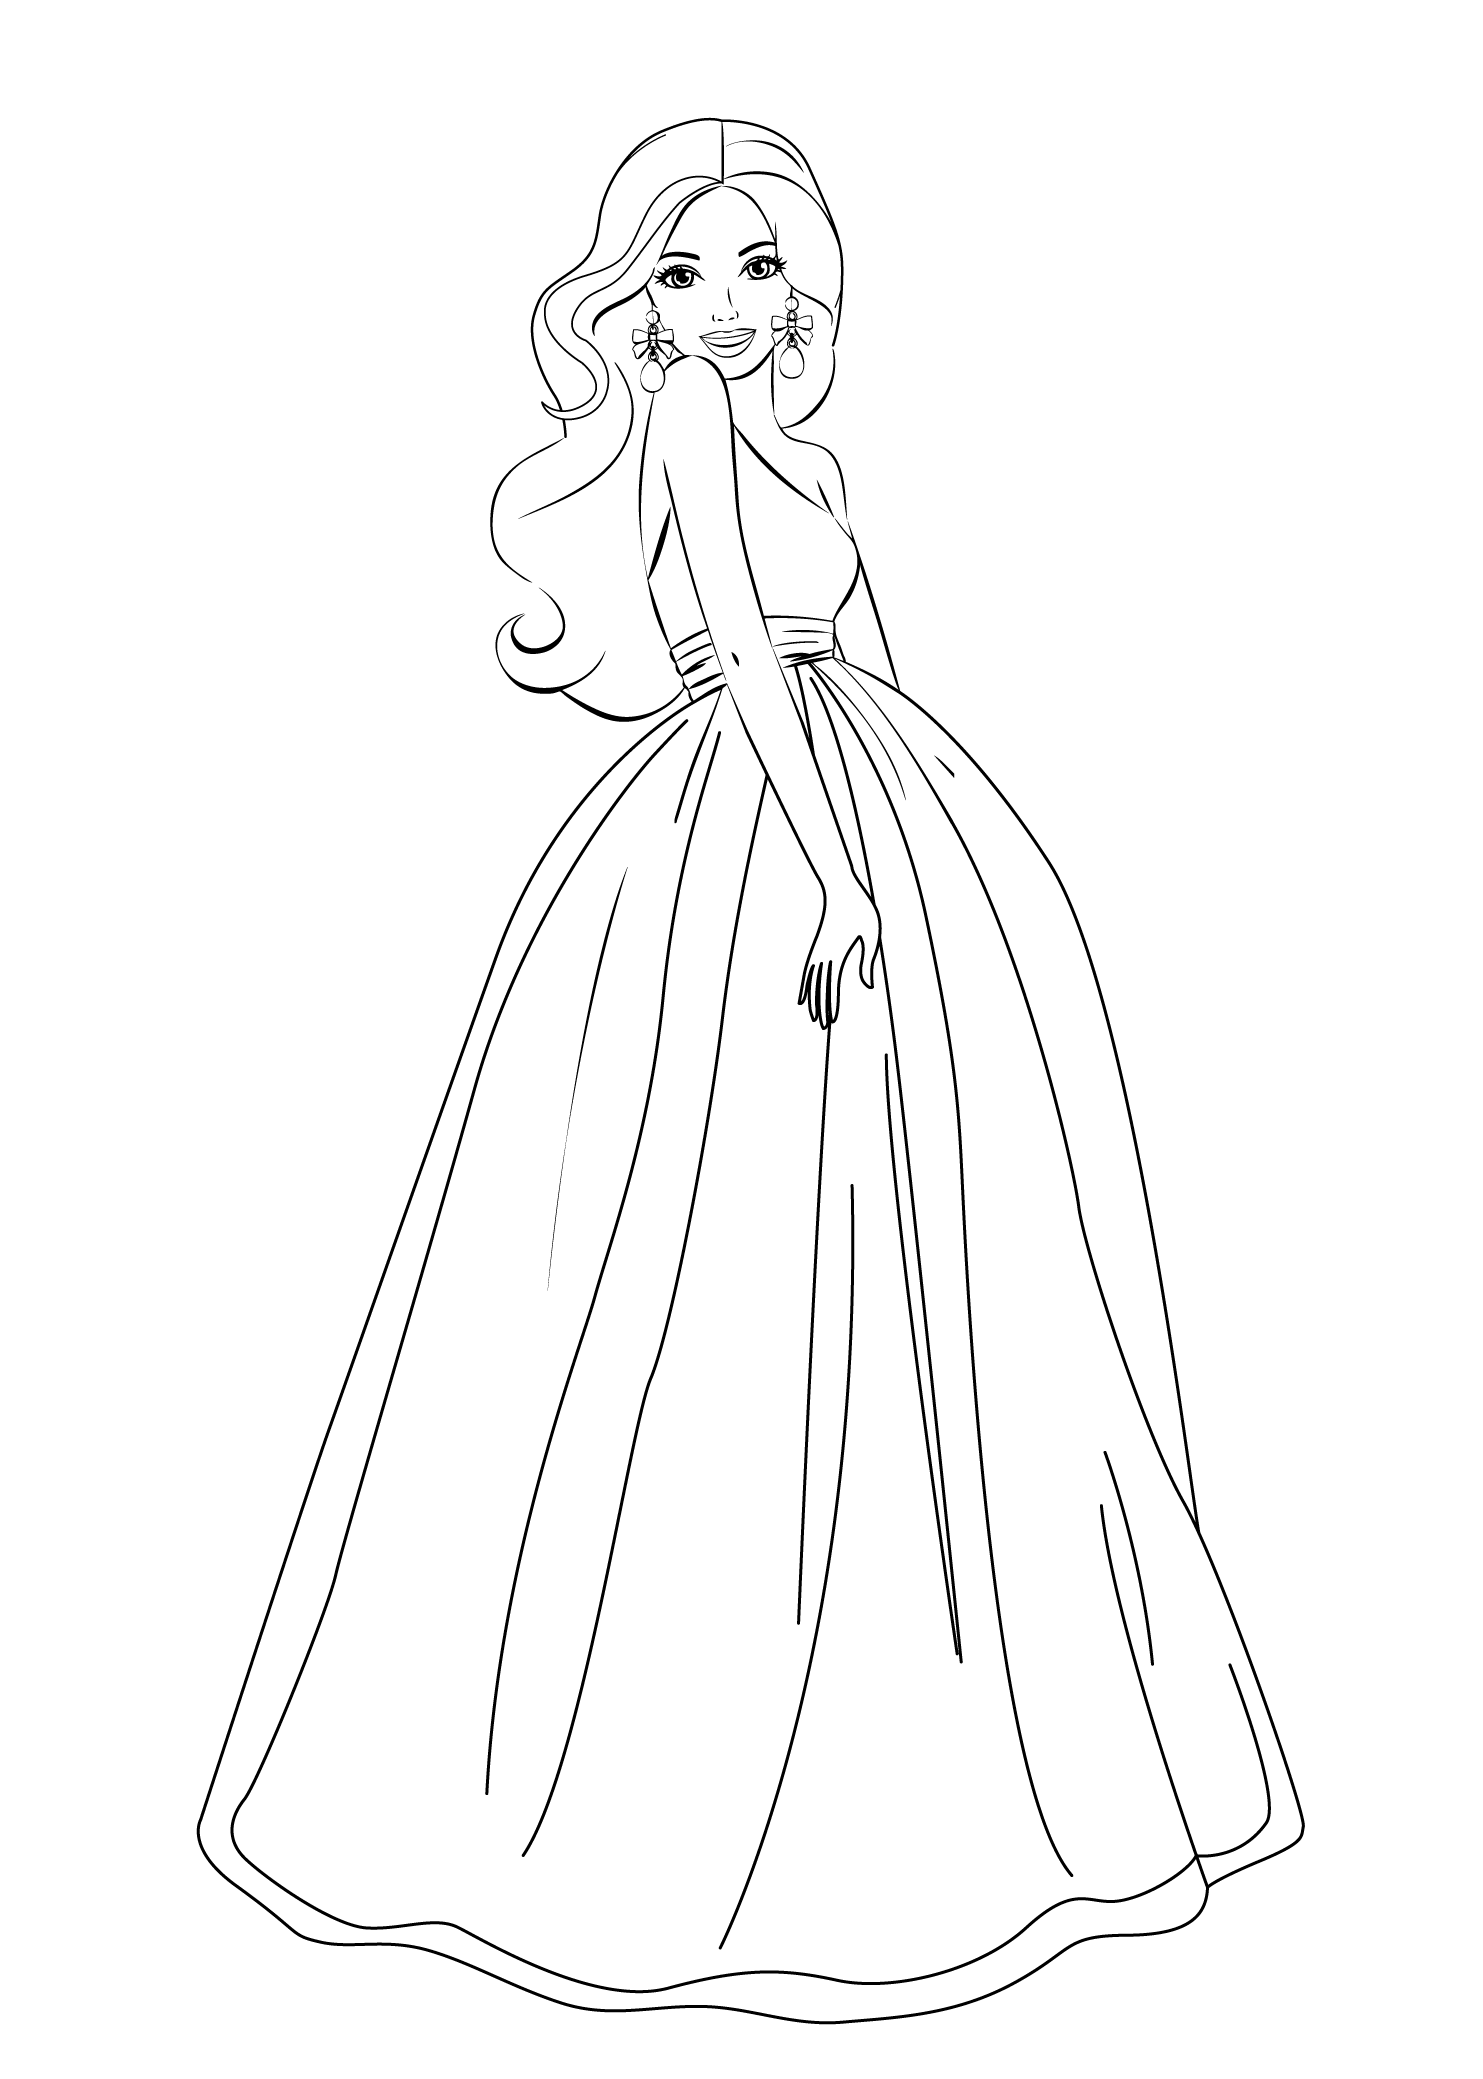 Barbie clipart easy. Coloring pages sketches hellokids